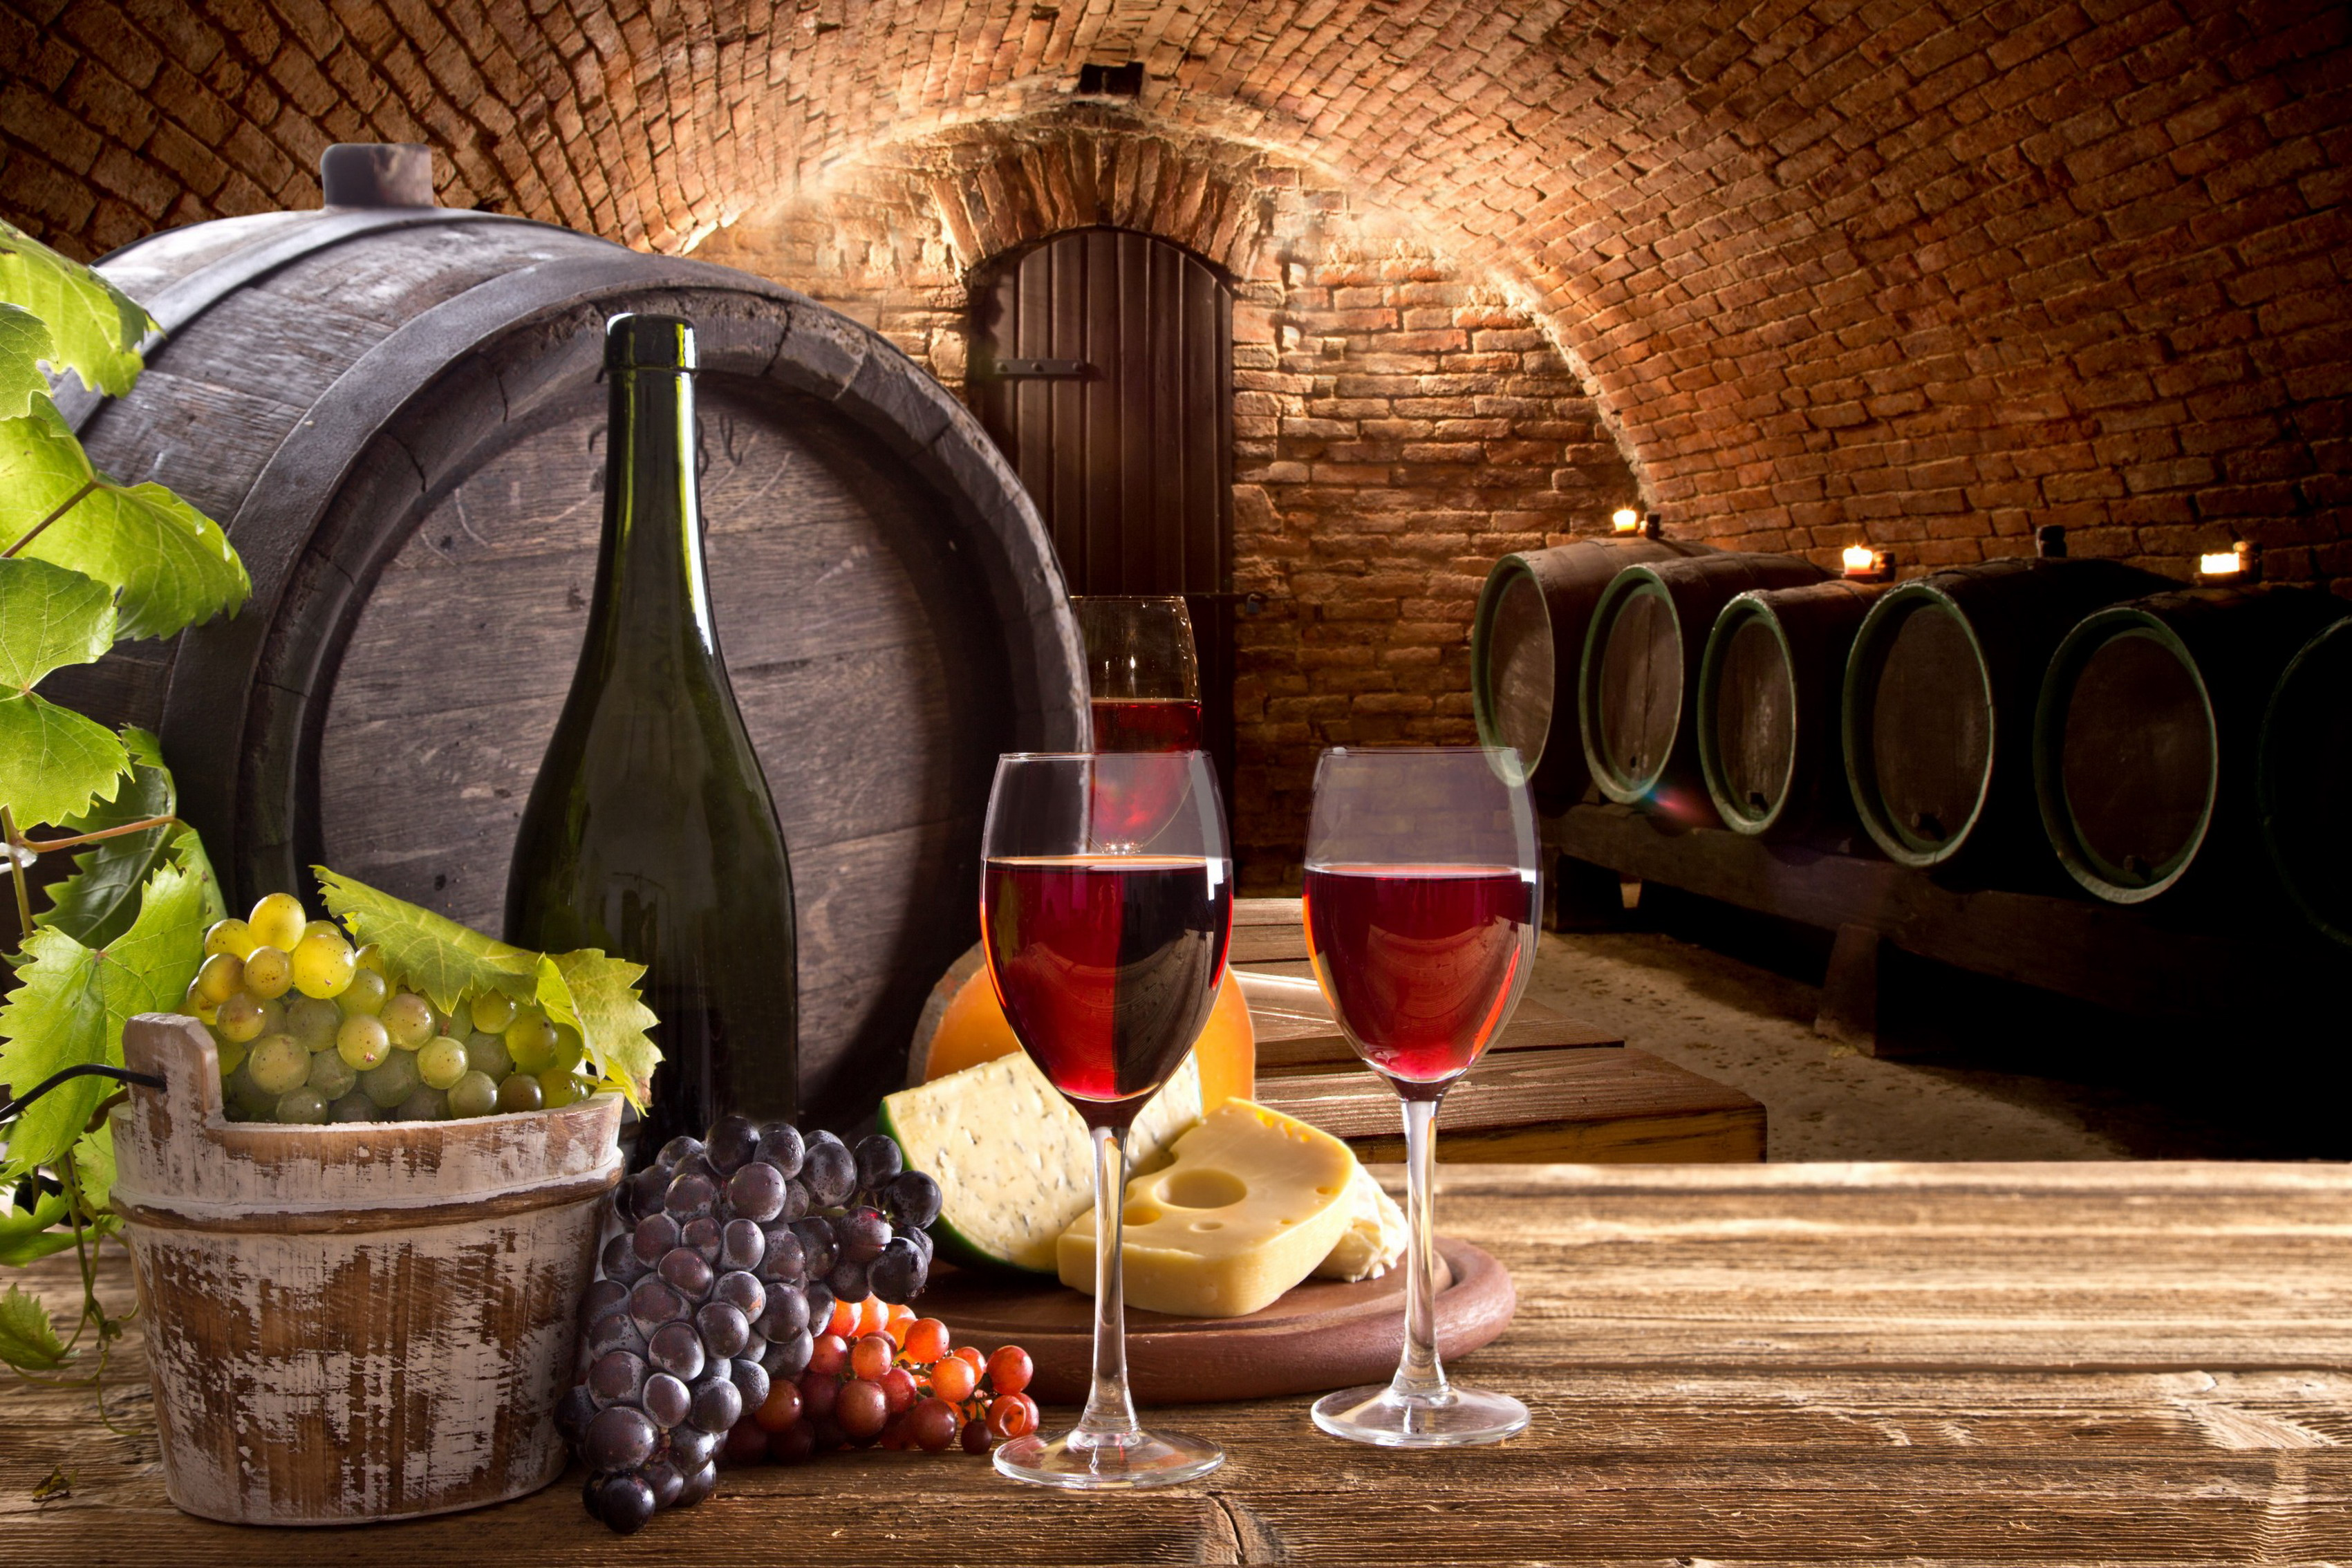 Home Decoration Cellar Barrel Wine Table Glasses Bottle Grapes Cheese Food Photo Silk Fabric Poster Print Sw1469942 Sw045